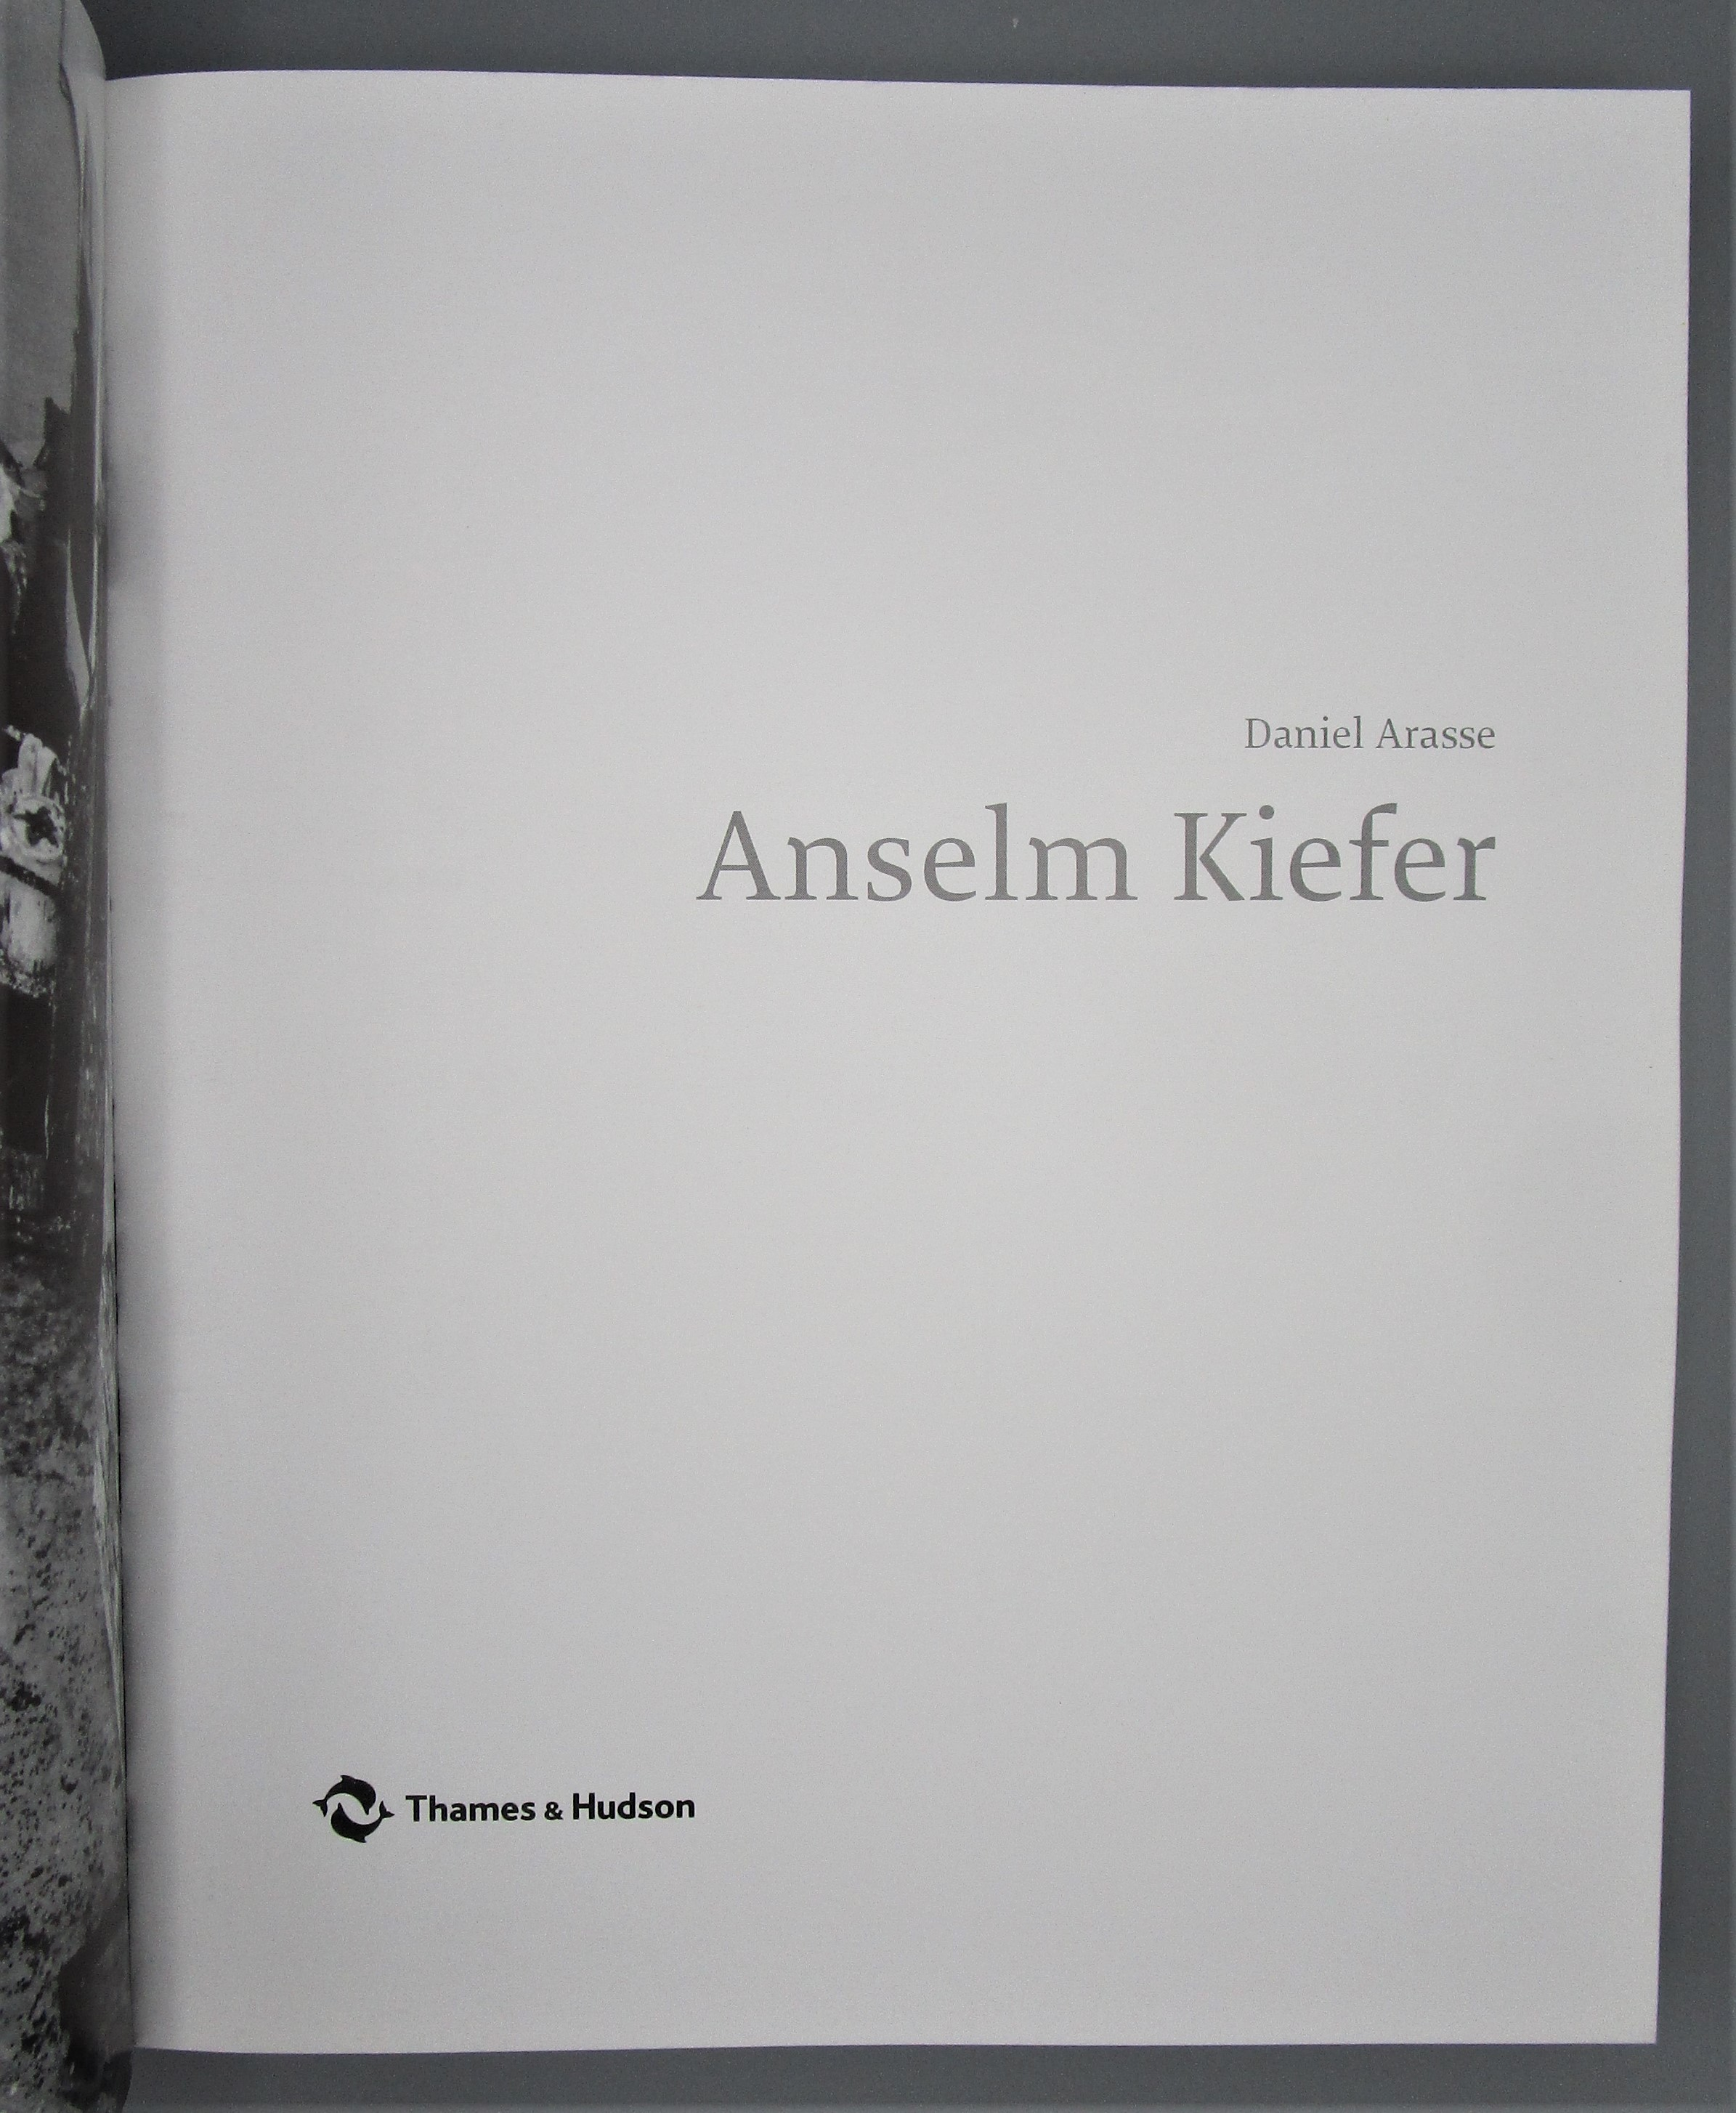 ANSELM KIEFER, by Daniel Arasse - 2001